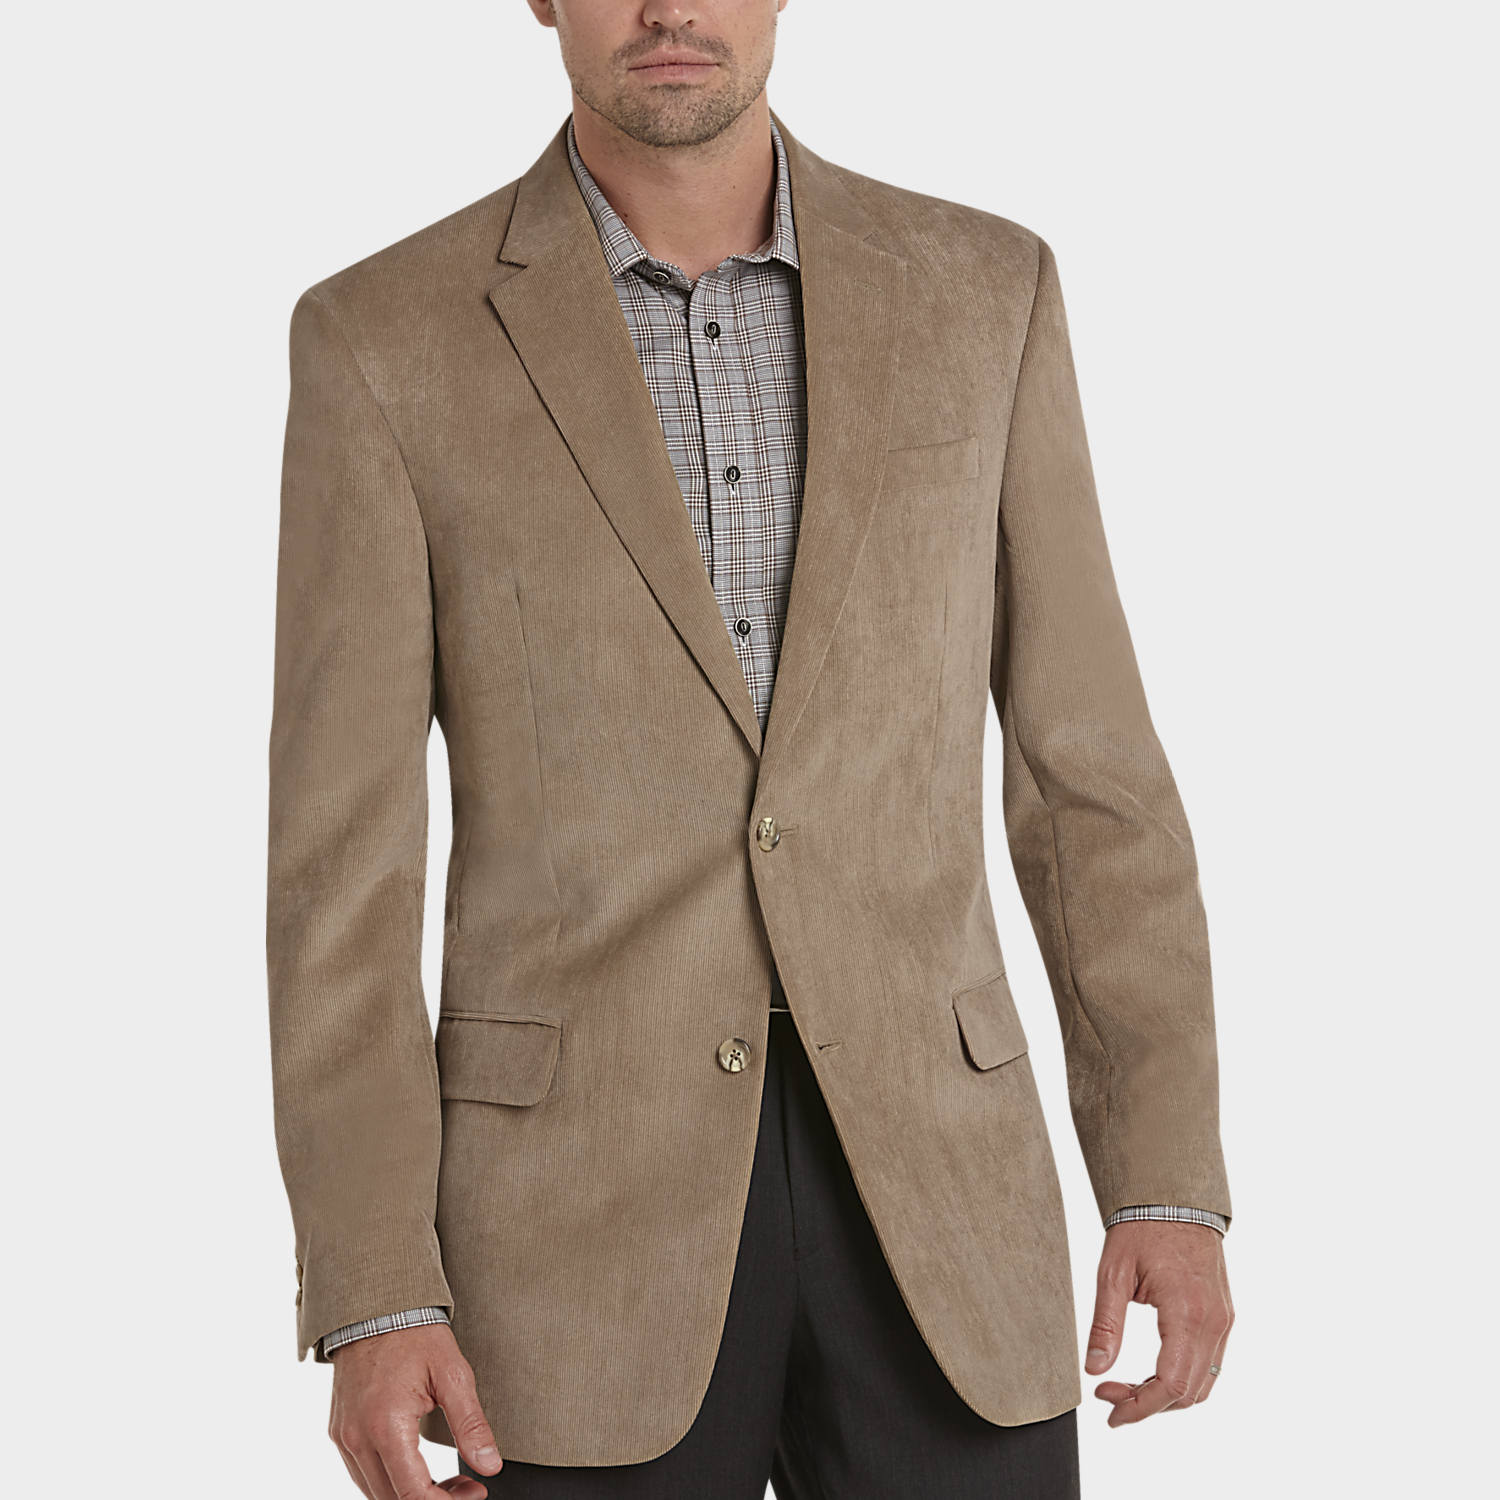 pronto uomo tan microsuede modern fit sport coat  men's modern  - pronto uomo tan microsuede modern fit sport coat  men's modern fit  men'swearhouse